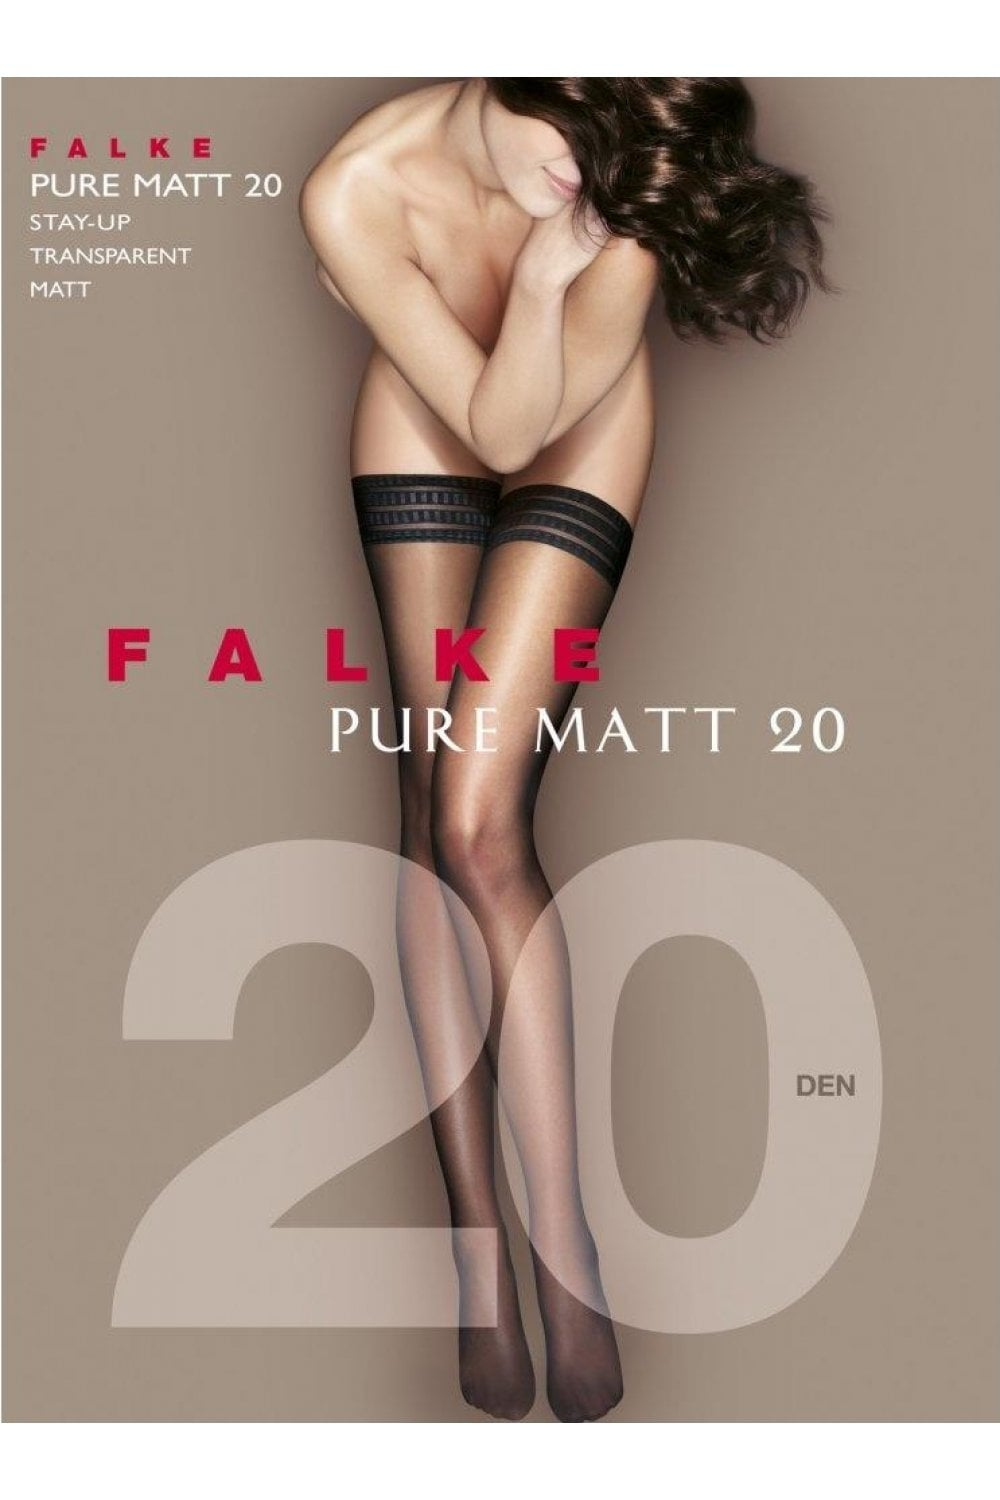 bc92d409c Falke Pure Matt 20 Denier Transparent Hold Ups